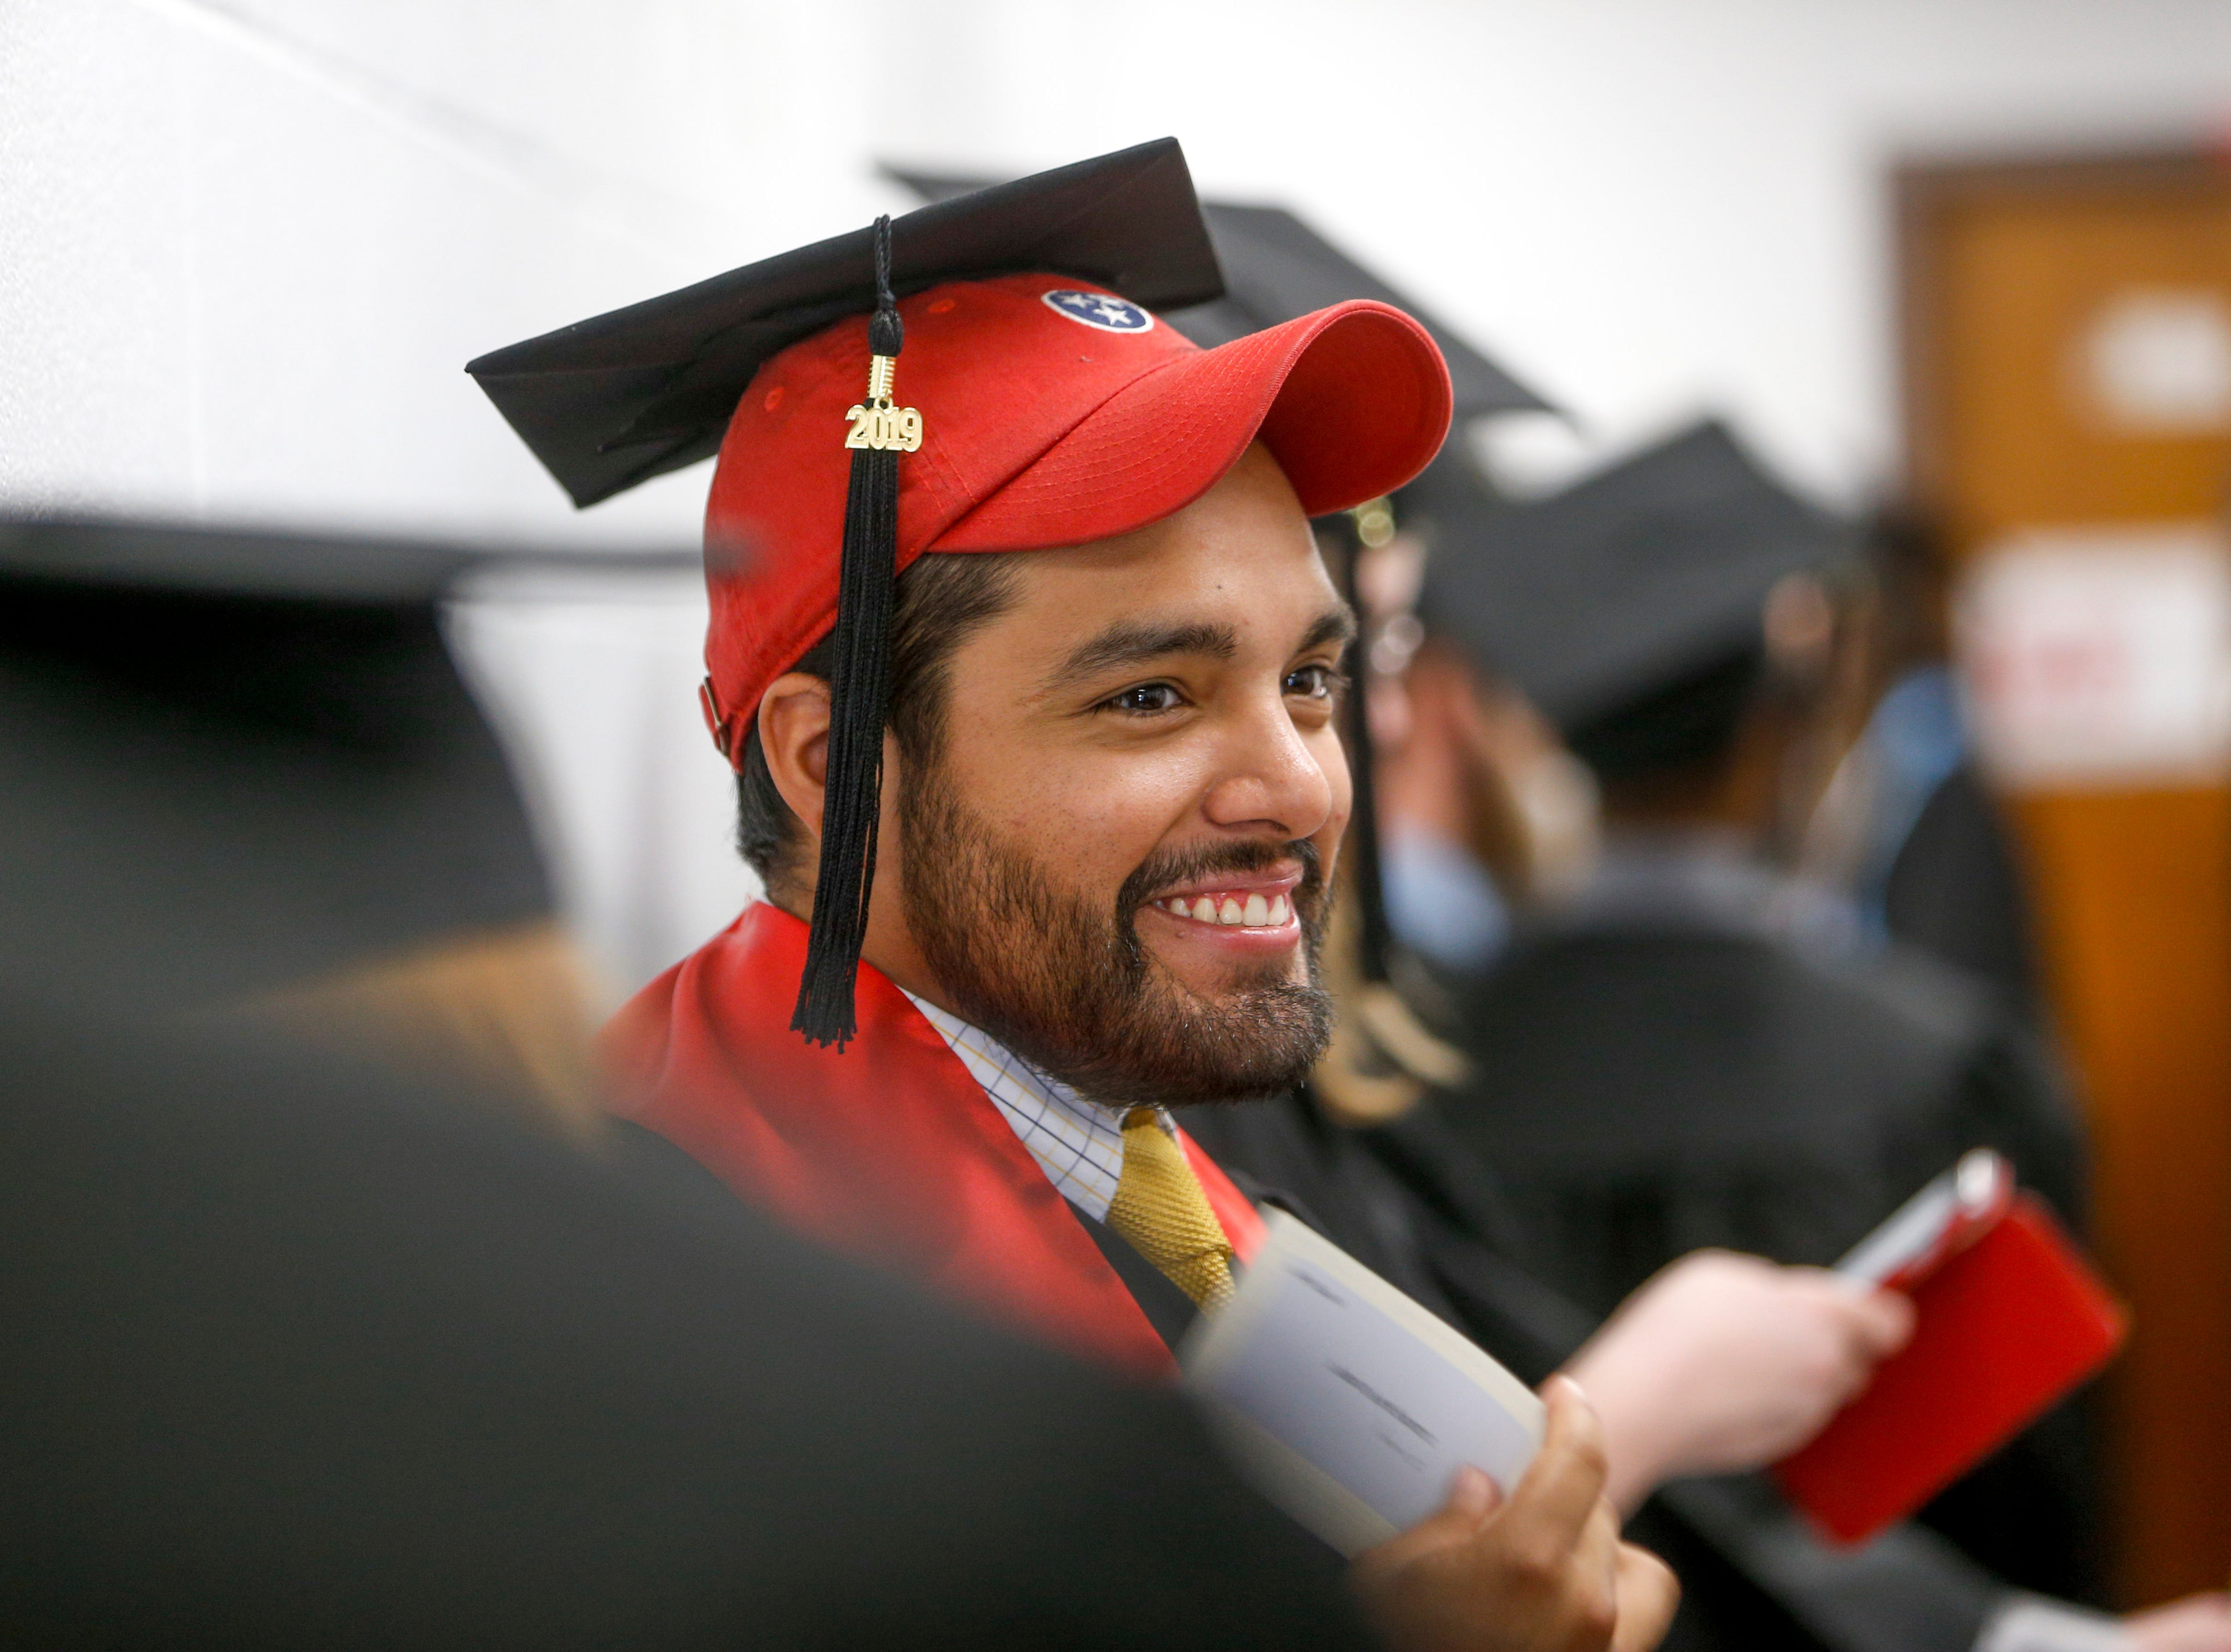 Students chat with one another in the hallways before heading into graduation at the Austin Peay spring commencement ceremony 2019 for College of Business and College of STEM at Winfield Dunn Center in Clarksville, Tenn., on Friday, May 3, 2019.